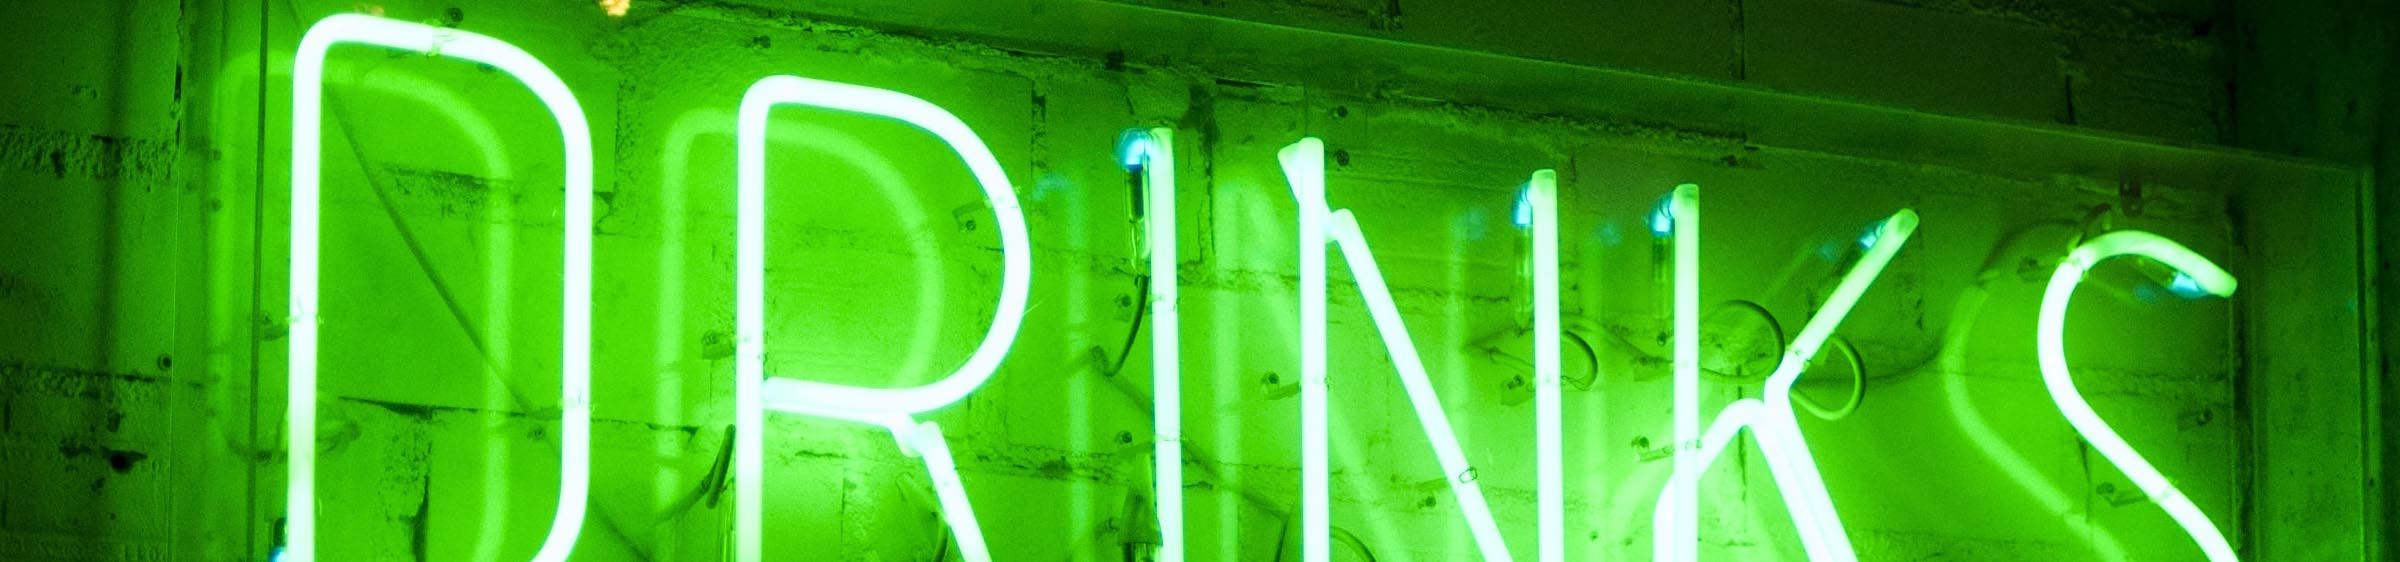 Neon 'Drinks' sign